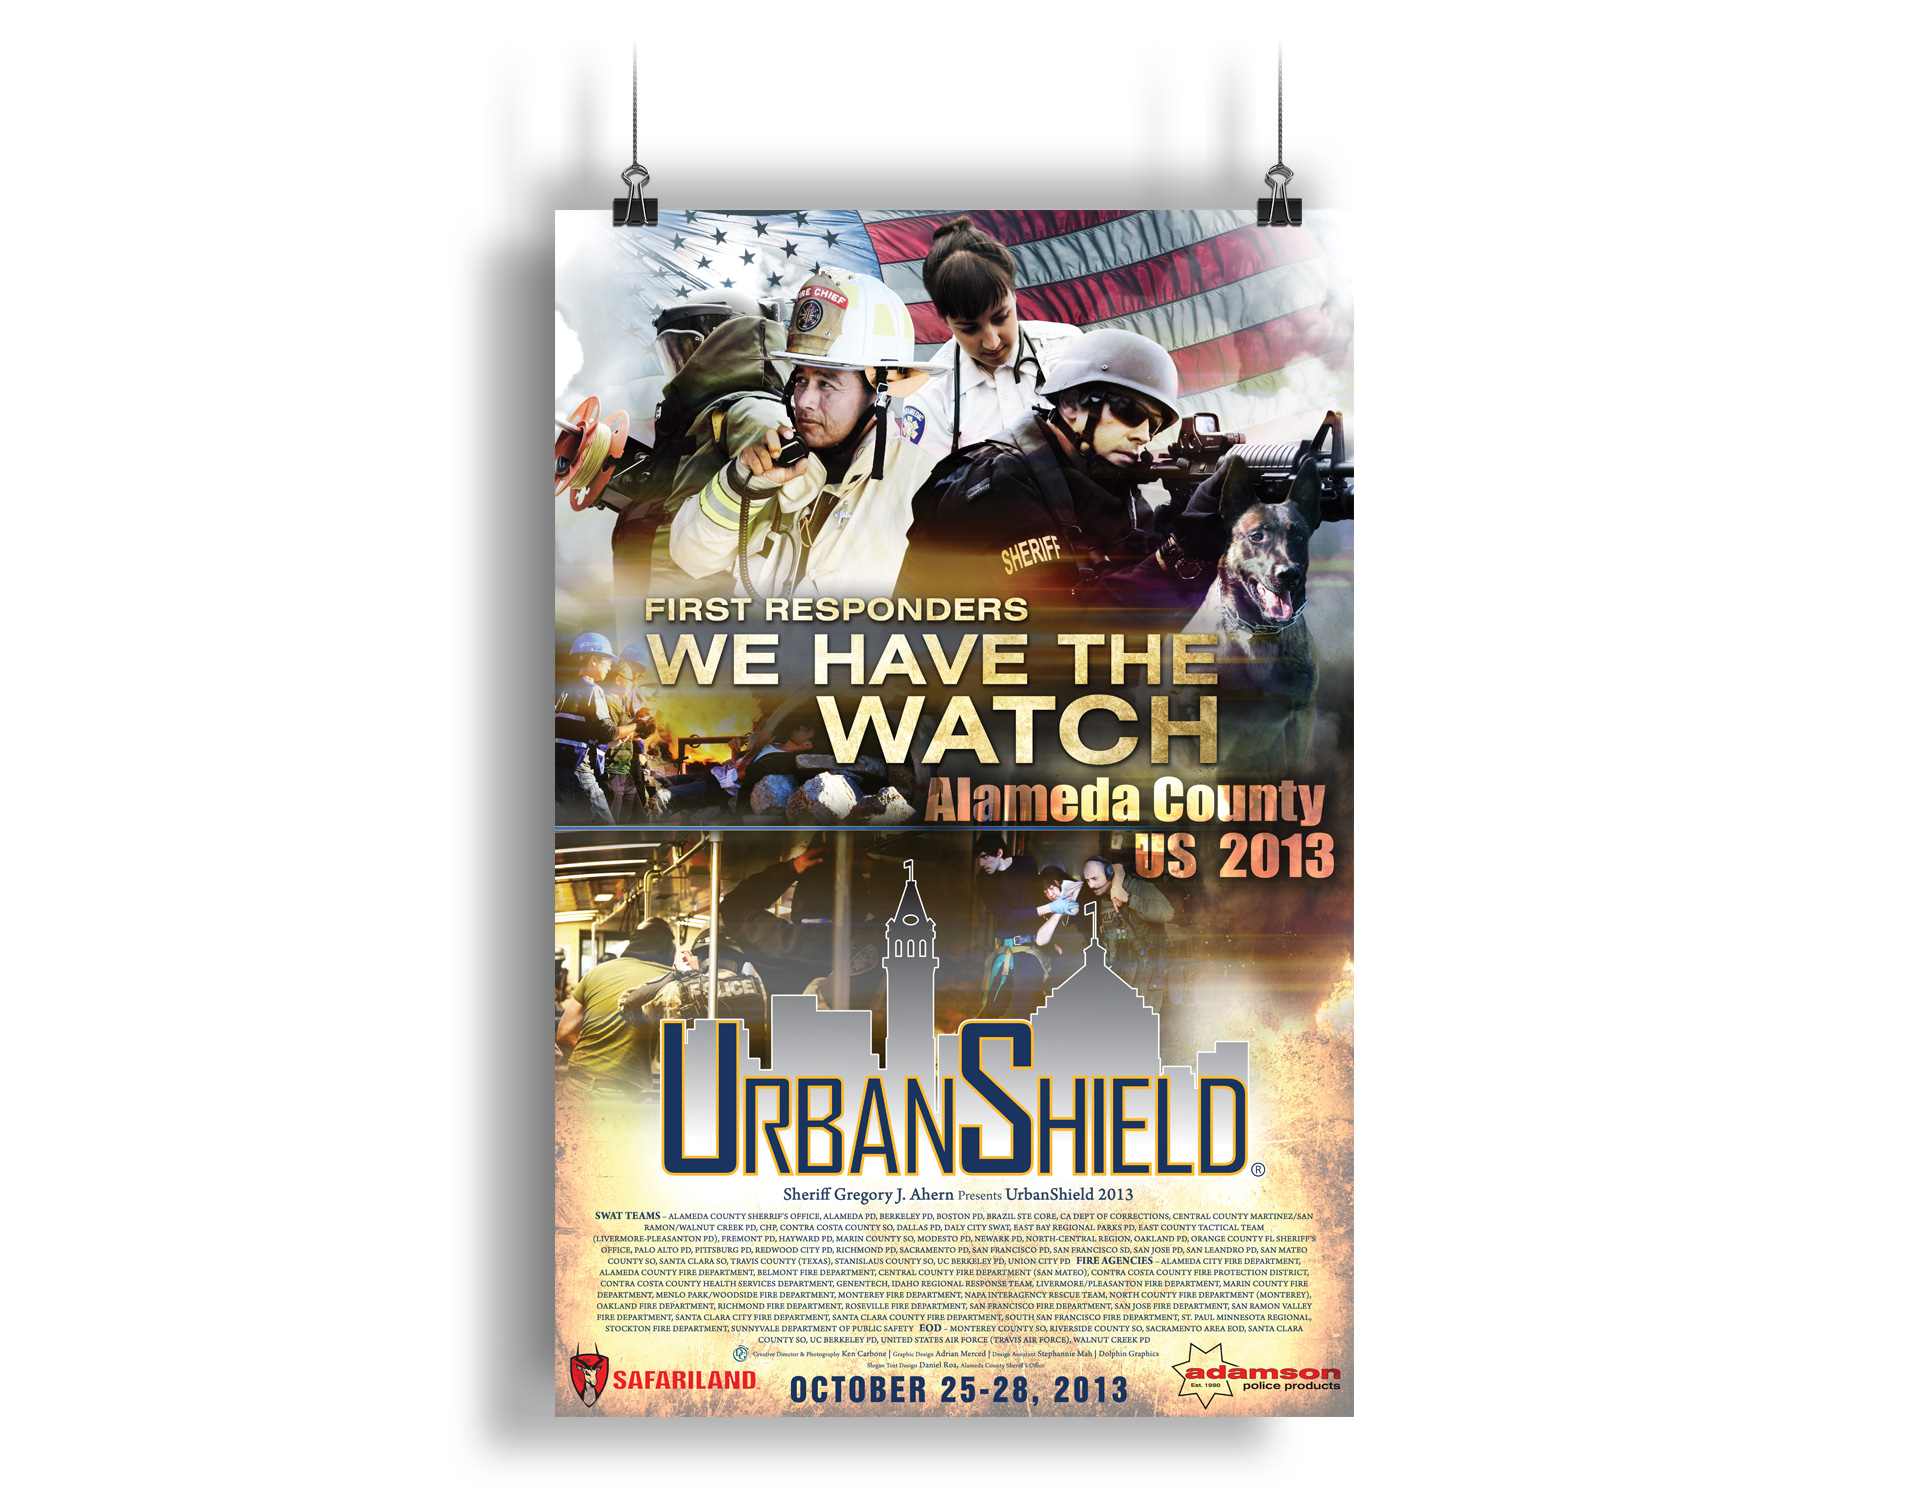 urban shield poster 03